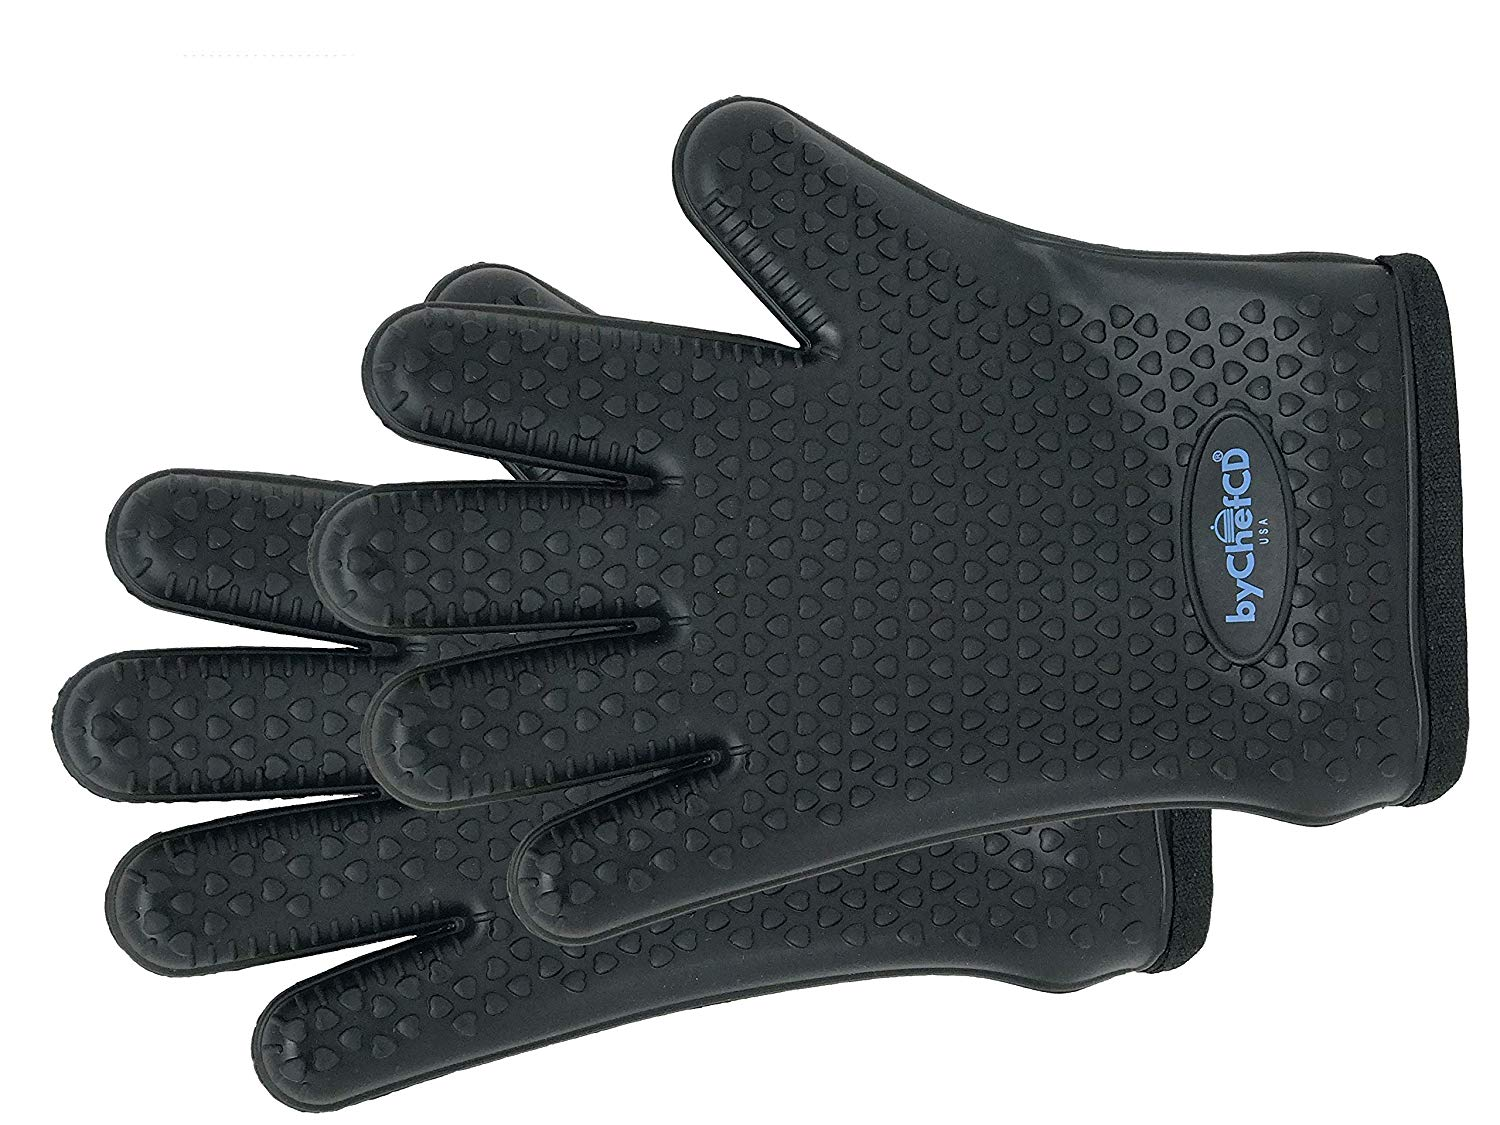 ByChefCD Silicone Grilling Gloves Black - ByChefCd Cooking products seller from Orlando, FL